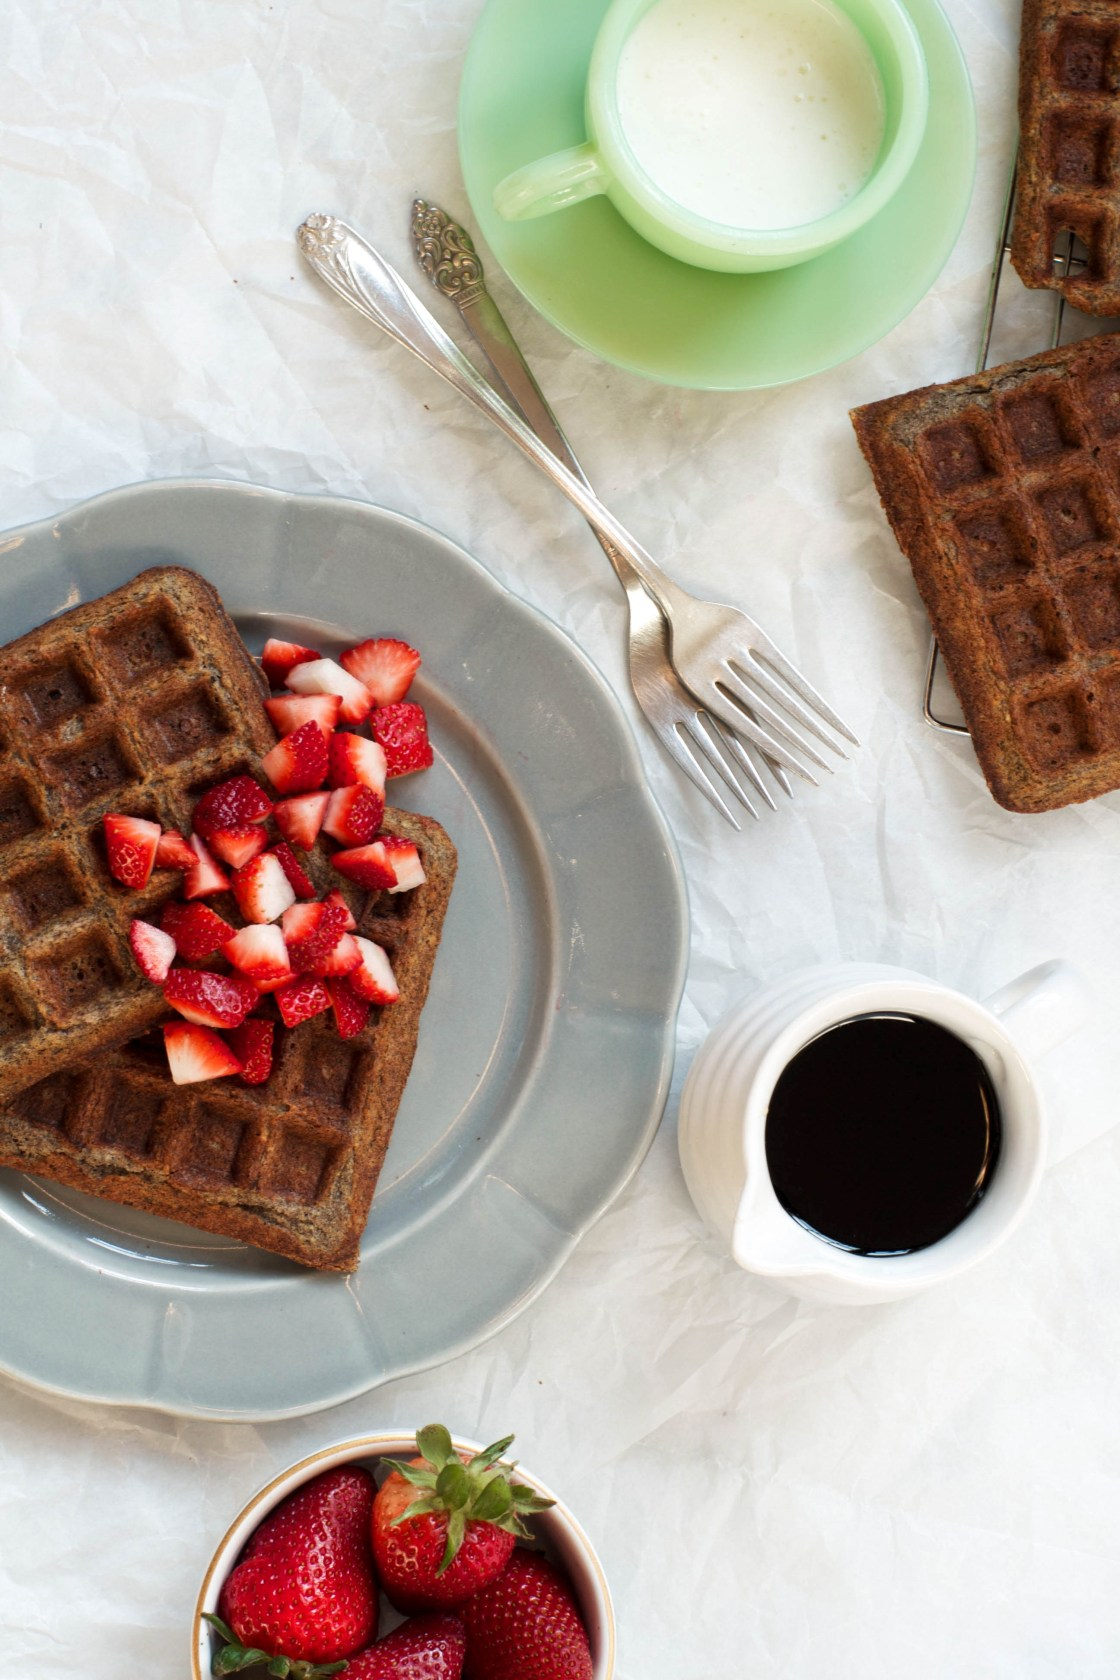 Gluten Free Buckwheat Waffles set on a gray plate with strawberries | Zestful Kitchen